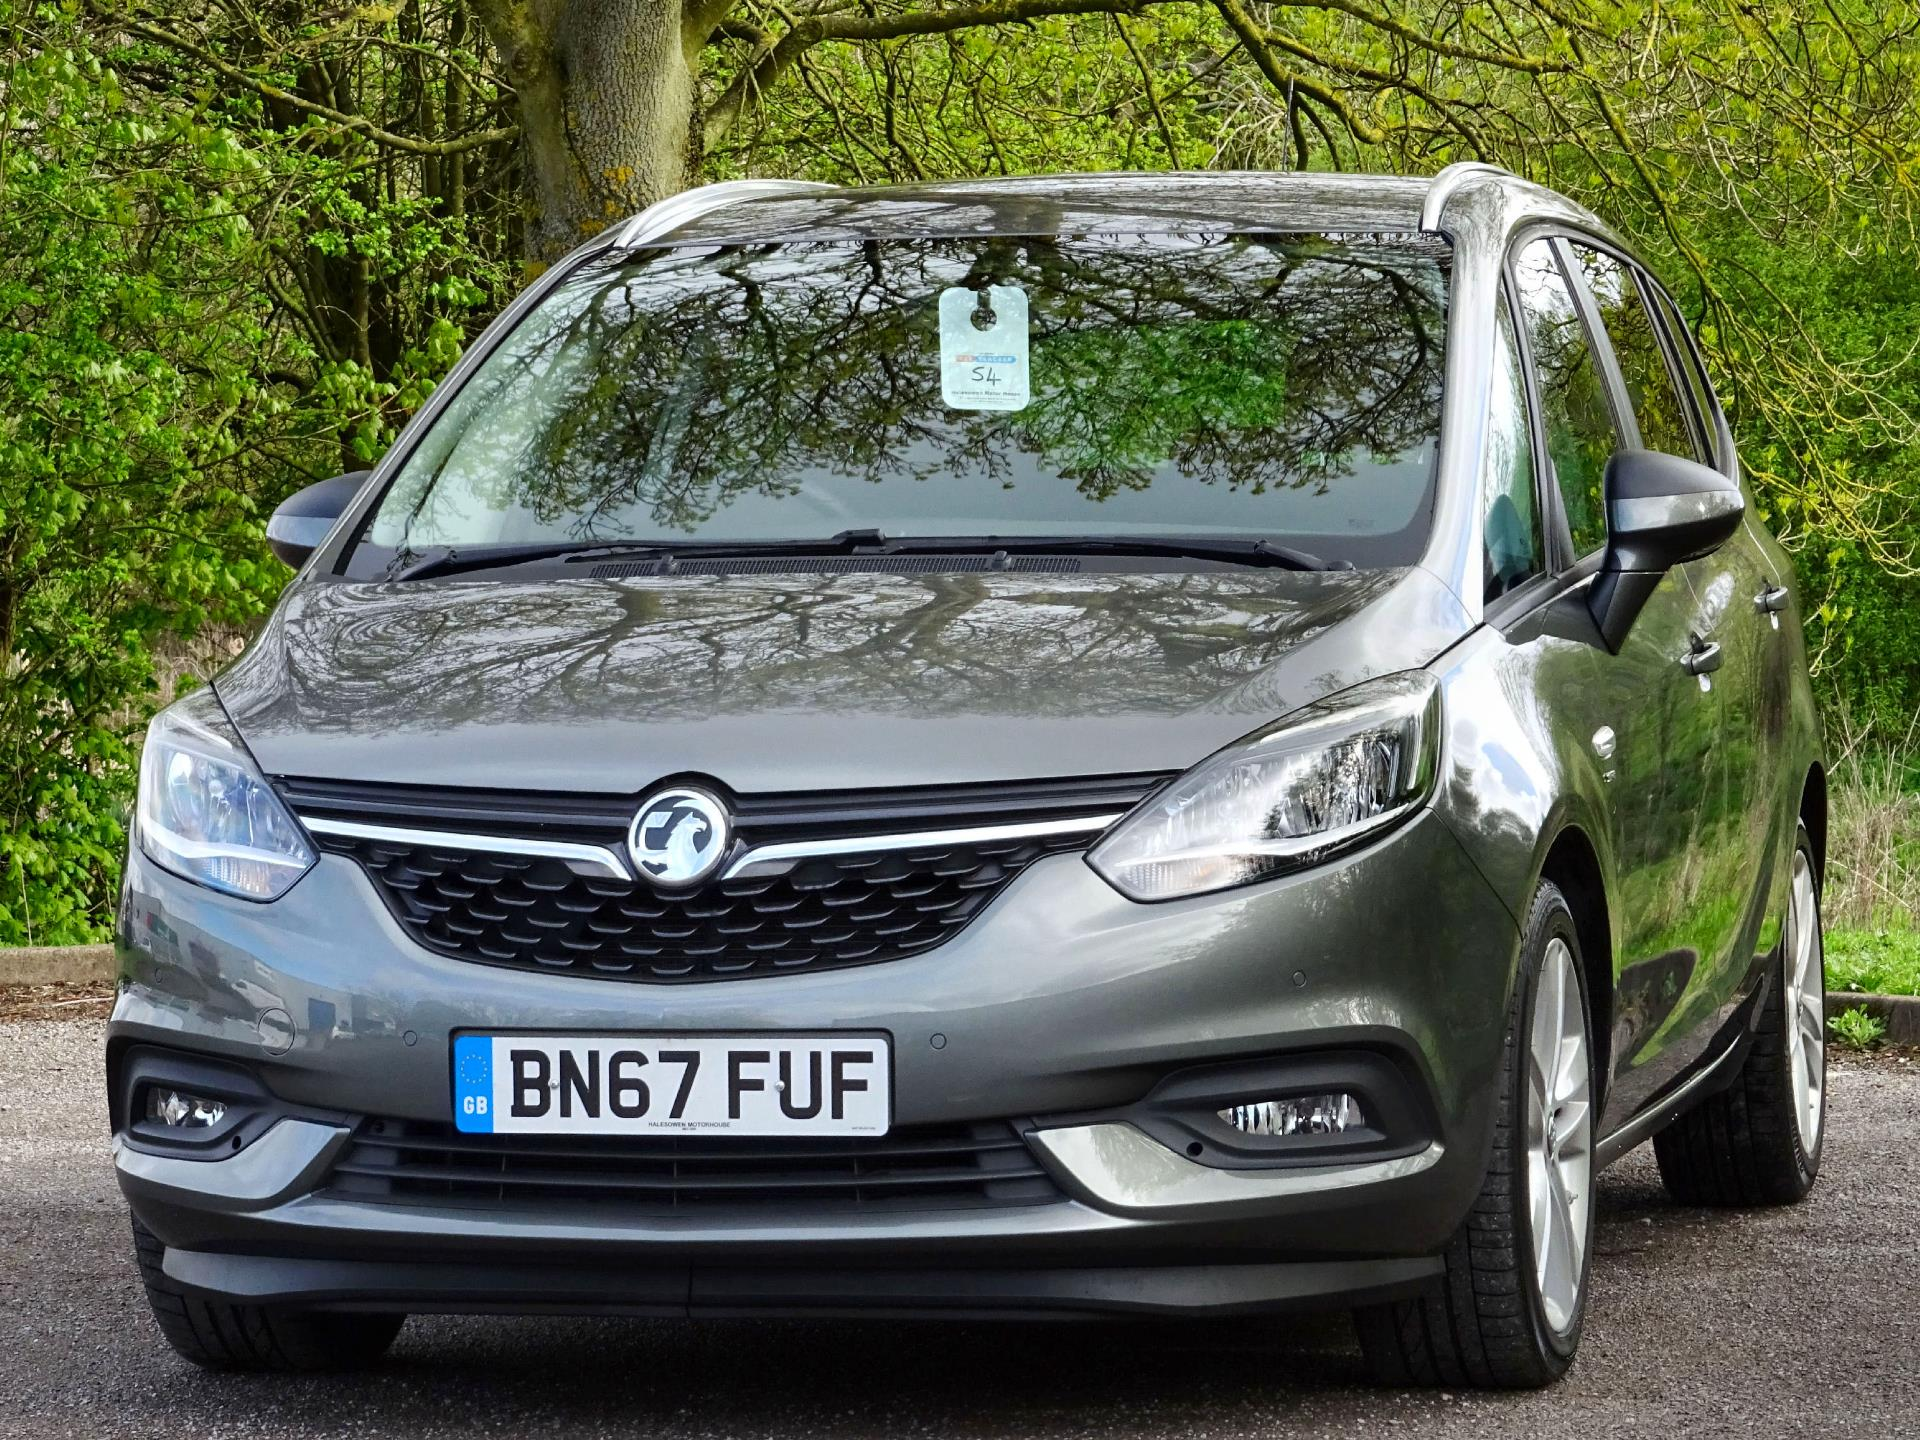 Large photo 4 for 2017/67 VAUXHALL ZAFIRA/67 VAUXHALL ZAFIRA 2.0 CDTI SRI * STYLISH FAMILY 7 SEATER * PARKING SENSORS * BLUETOOTH * DAB